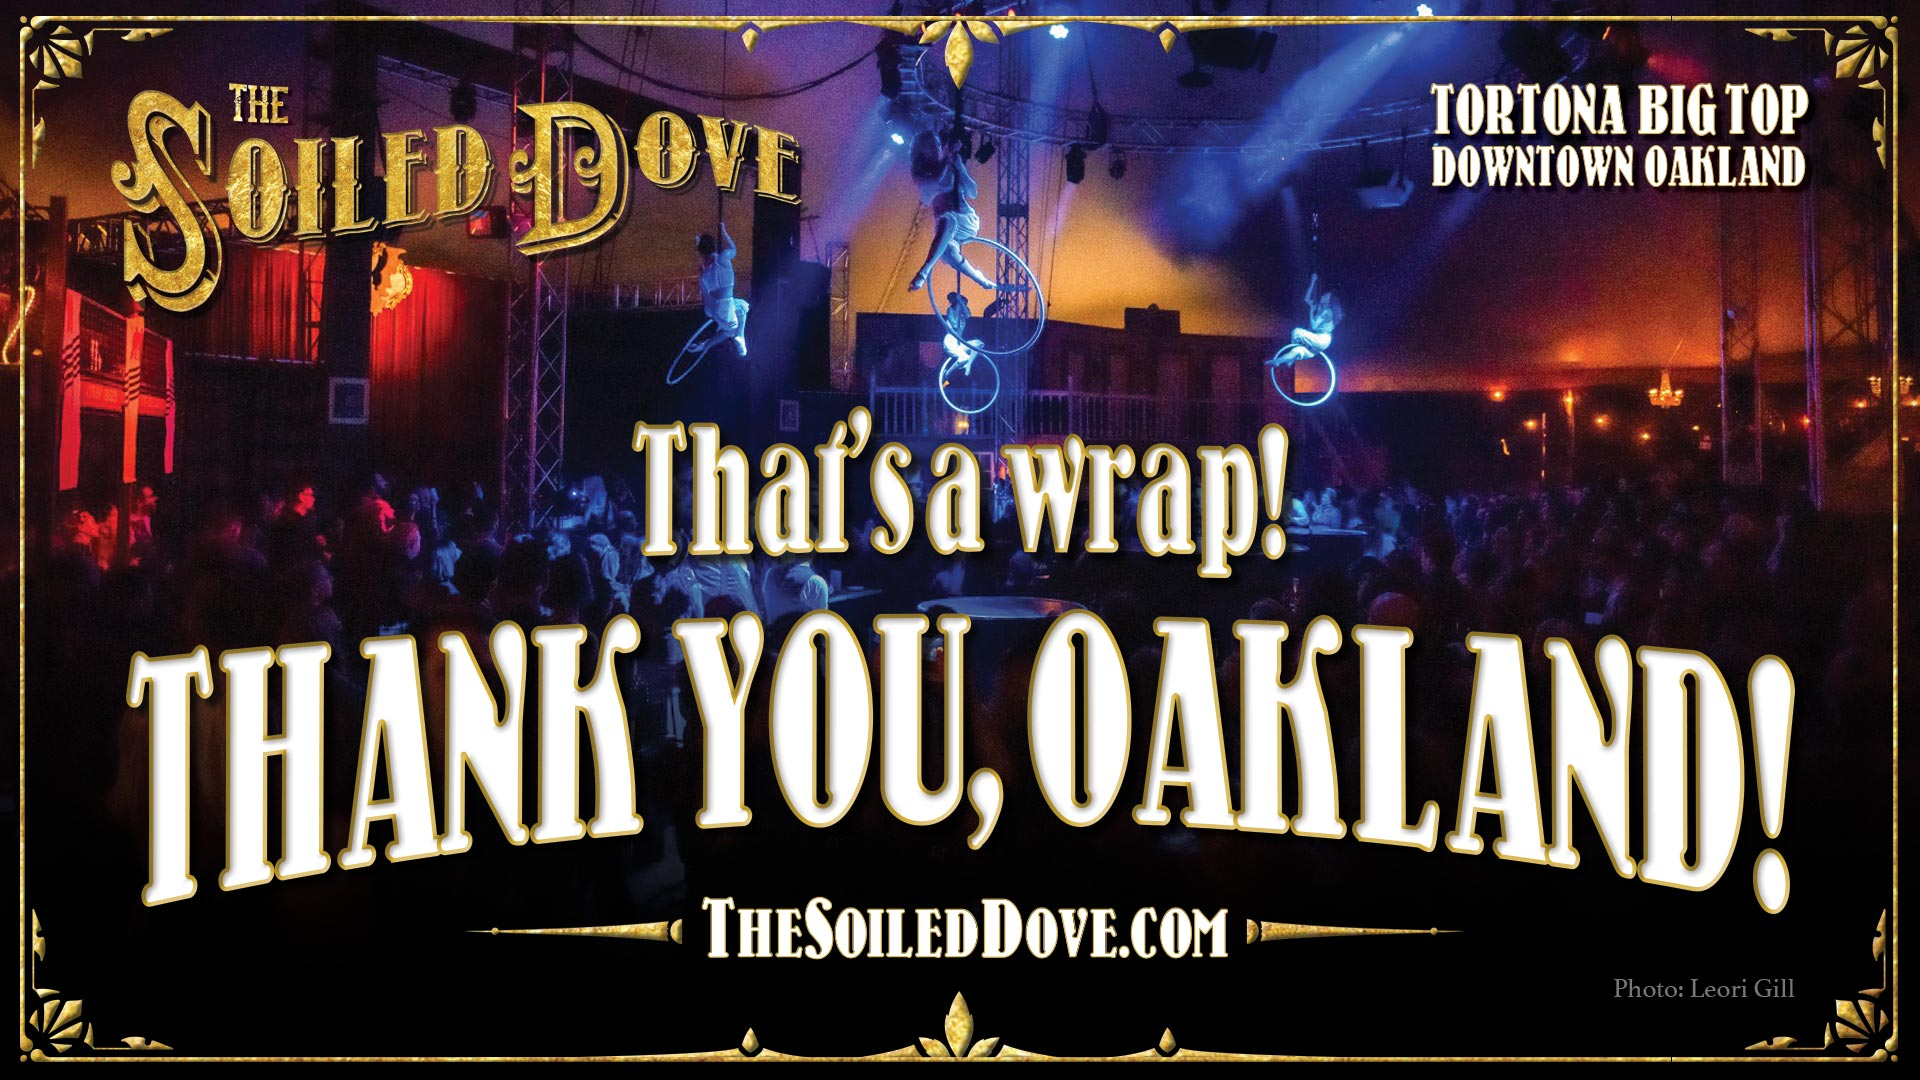 The Soiled Dove 2019 - That's a wrap - thank you, Oakland!